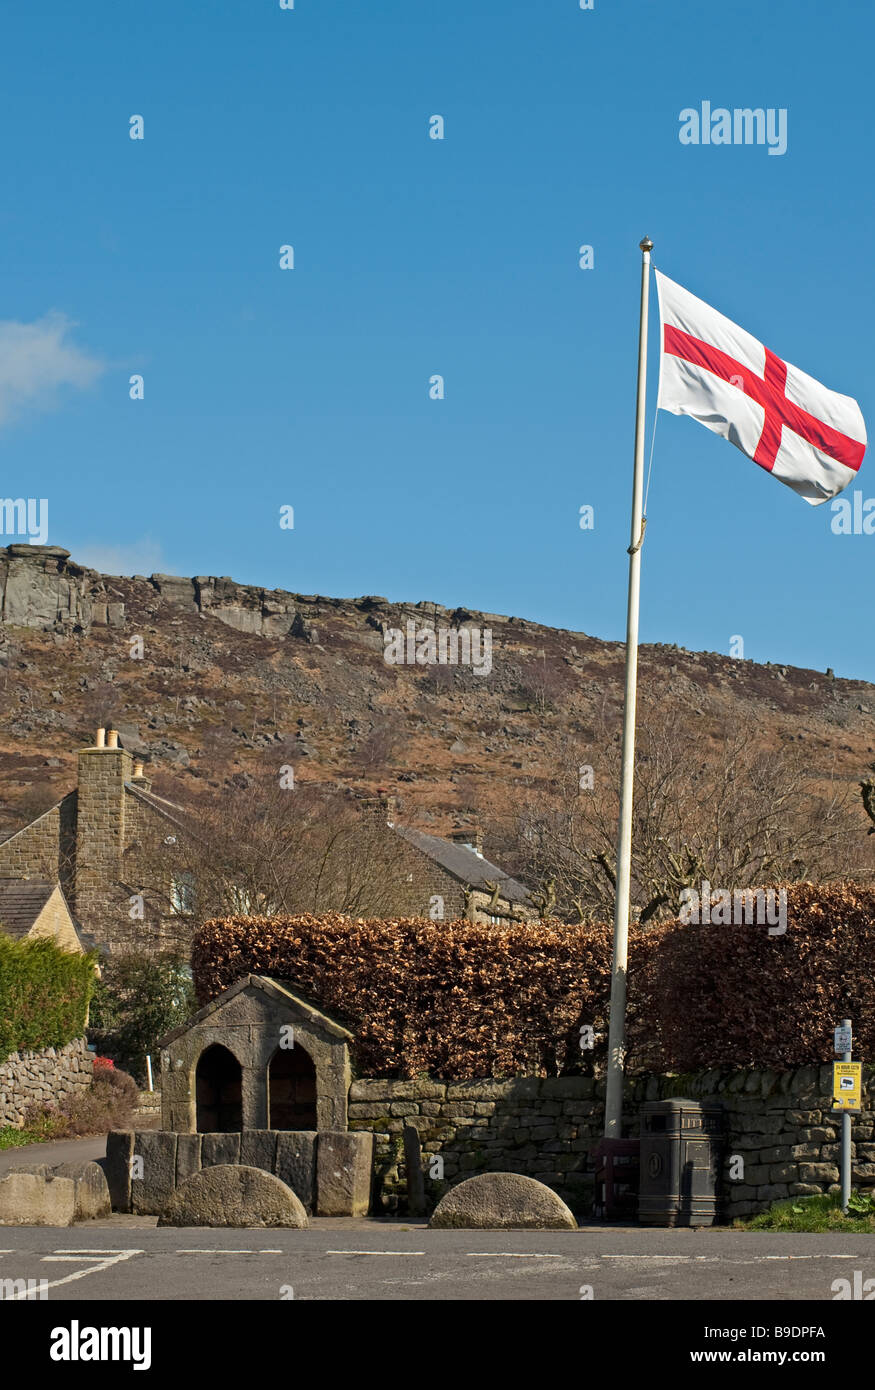 Curbar  village, 'Peak District', Derbyshire, England, 'Great Britain', 'United Kingdom' - Stock Image